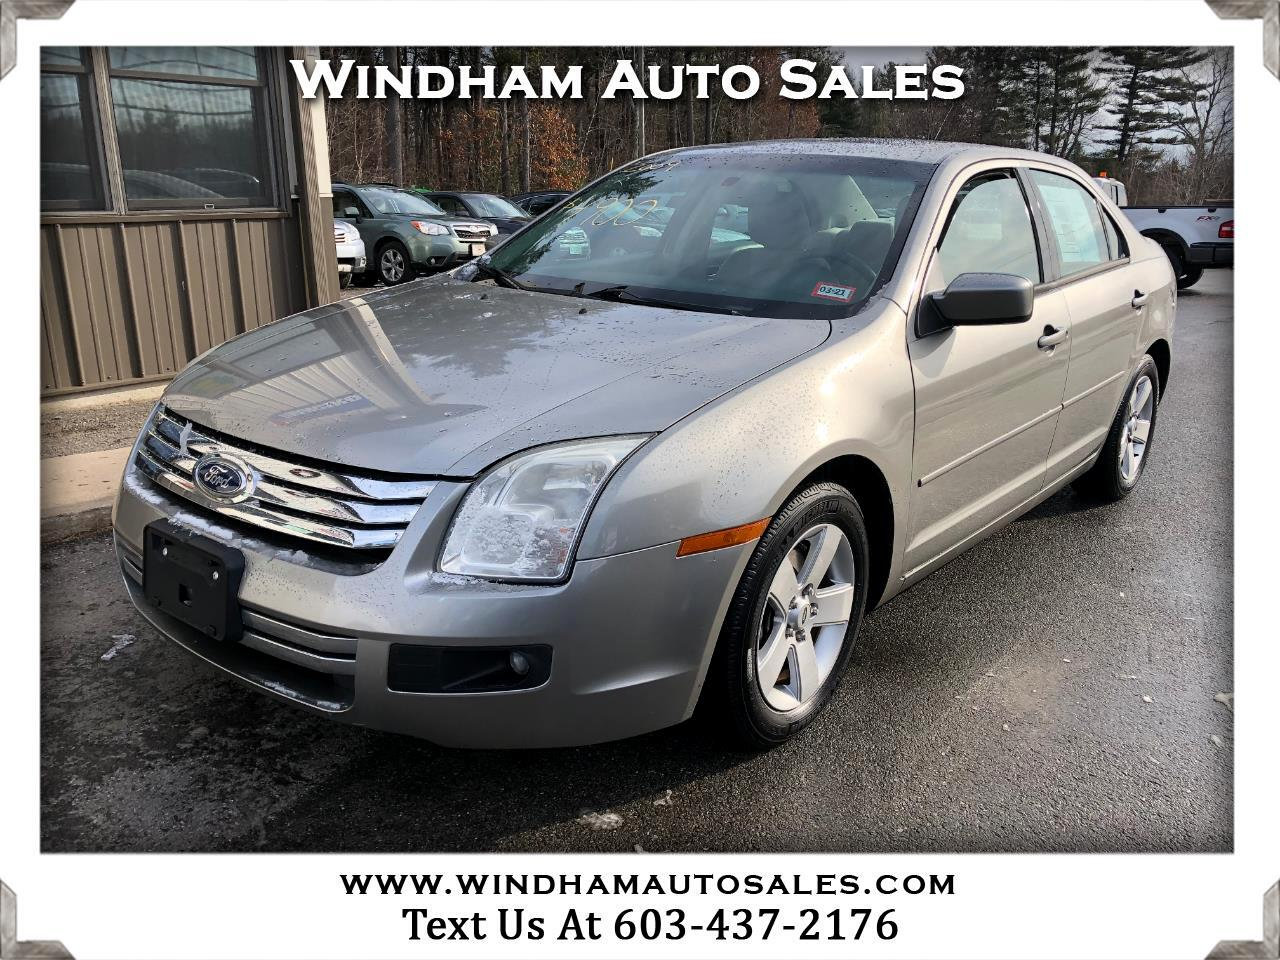 Ford Fusion 4dr Sdn I4 SE FWD 2009